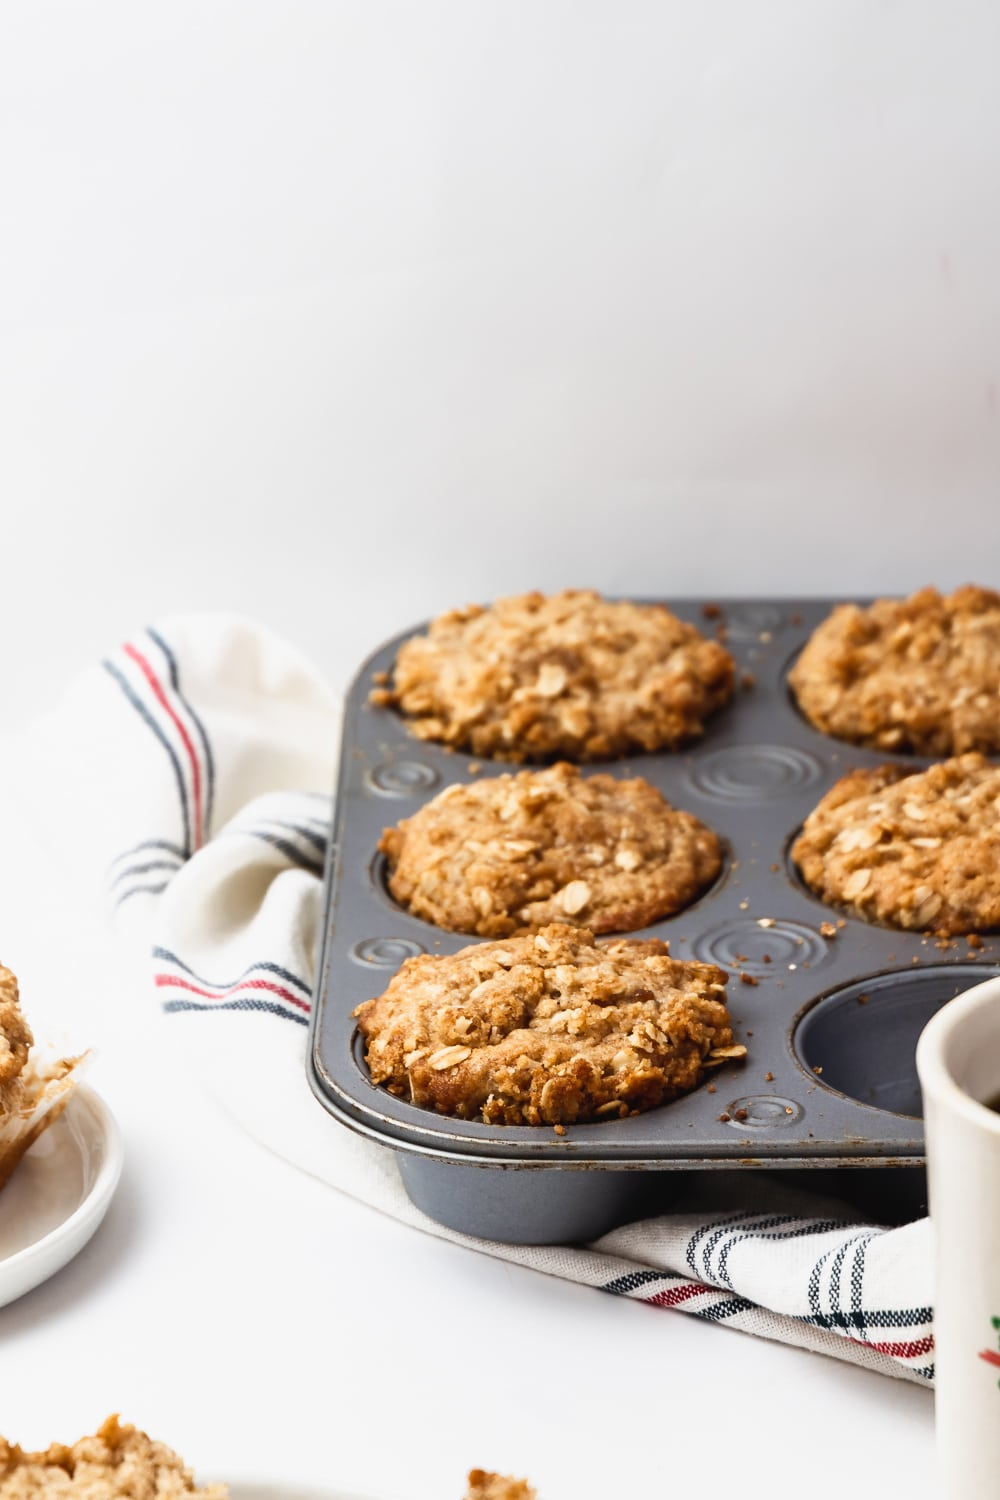 metal muffin tin with five brown sugar oatmeal muffins on top of striped kitchen towel. One muffin missing.